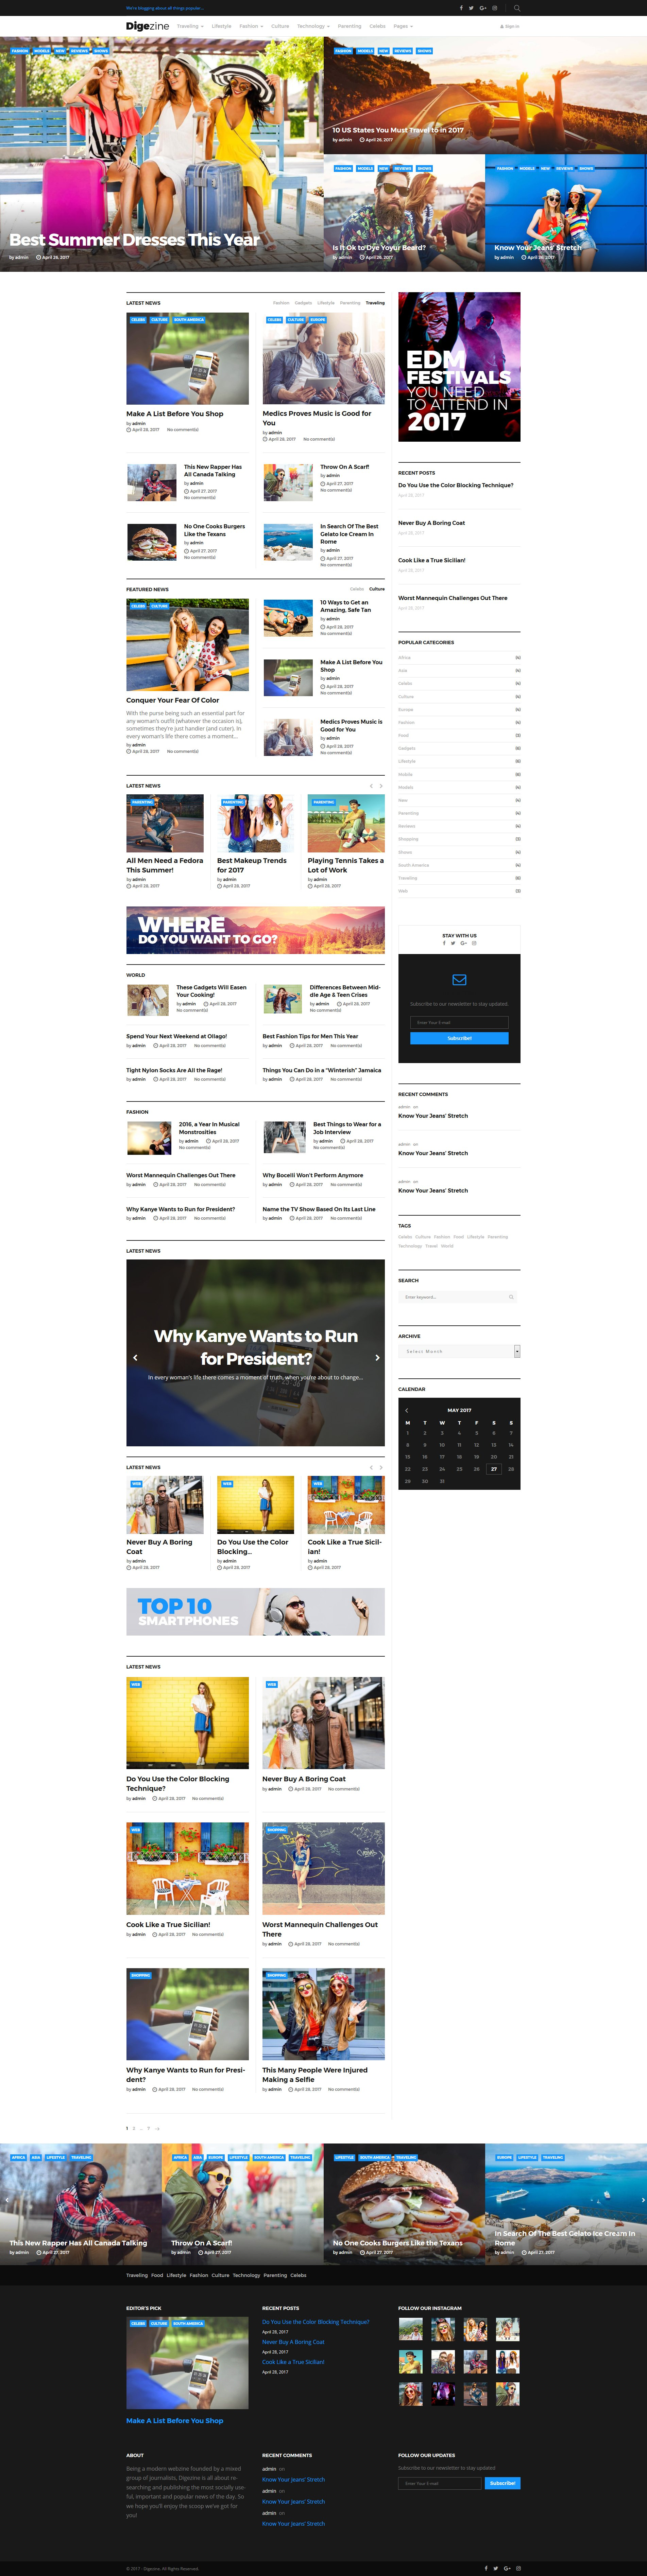 Digezine - News Magazine WordPress Theme - screenshot